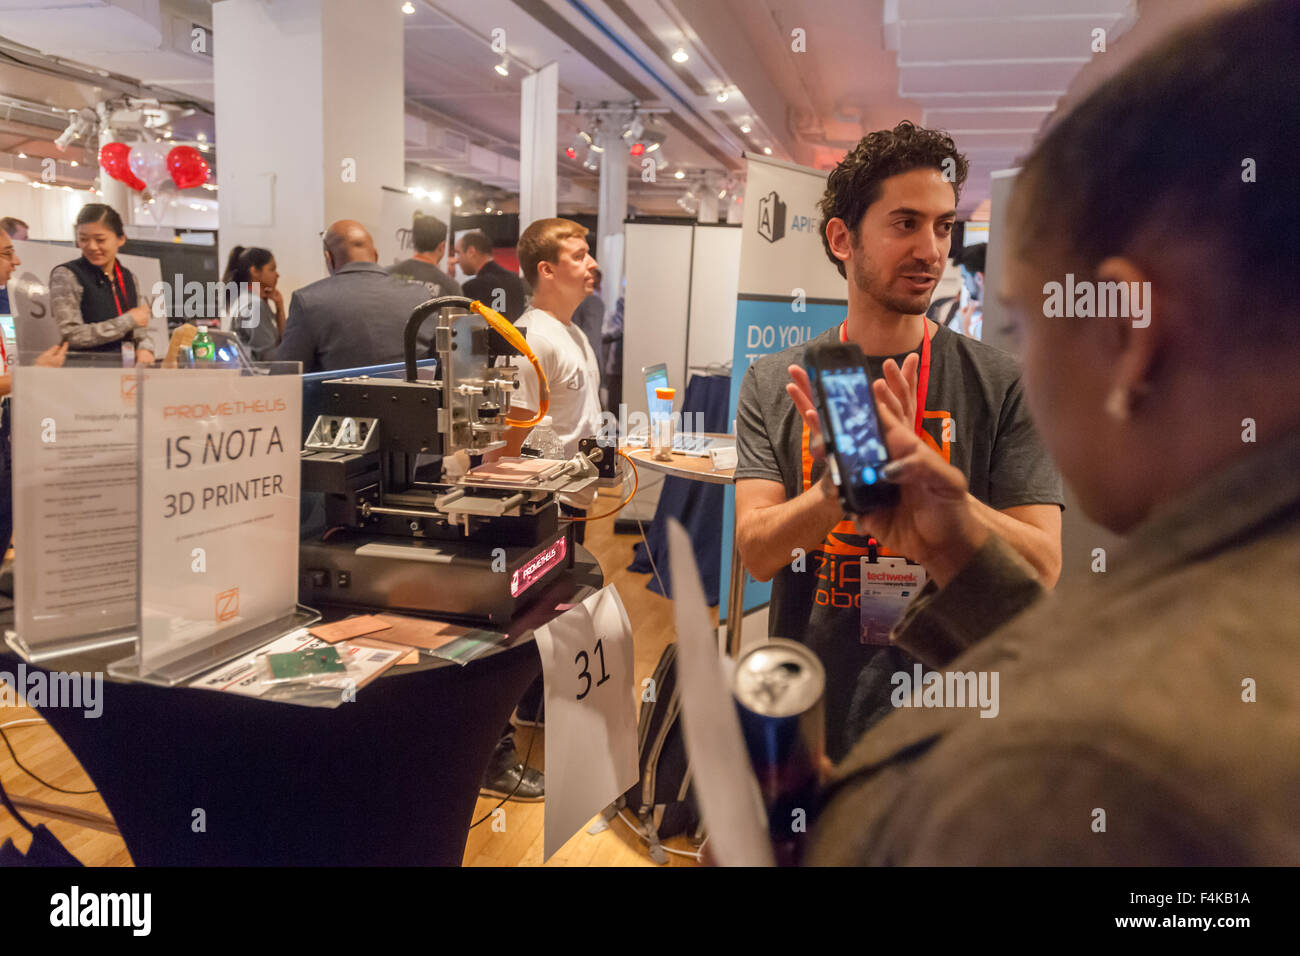 Zippy Robotics founder explains his Prometheus circuit board carving machine at the Techweek expo in New York event Stock Photo